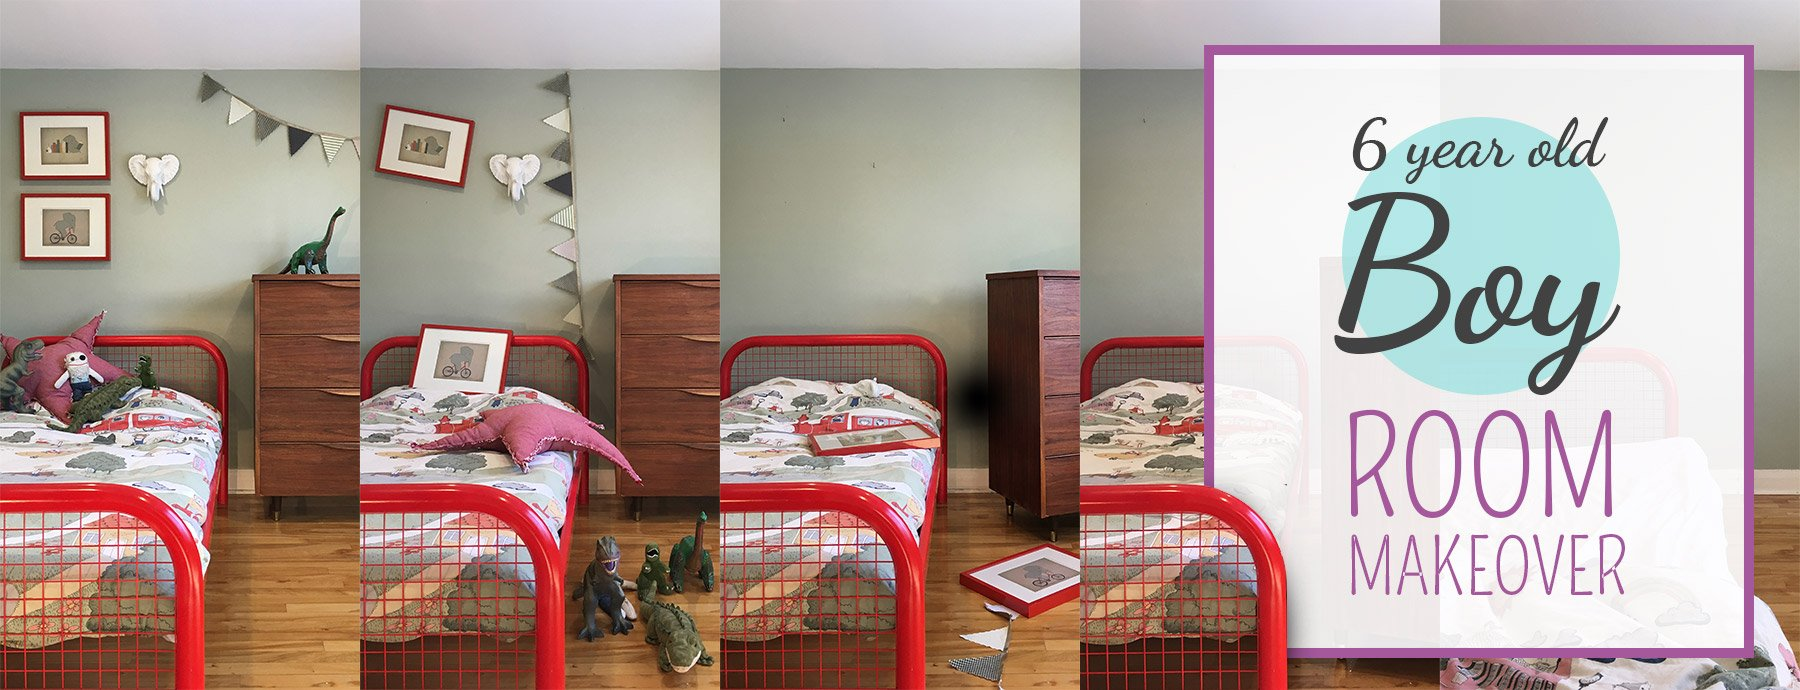 6 Year Old Boy Bedroom Makeover